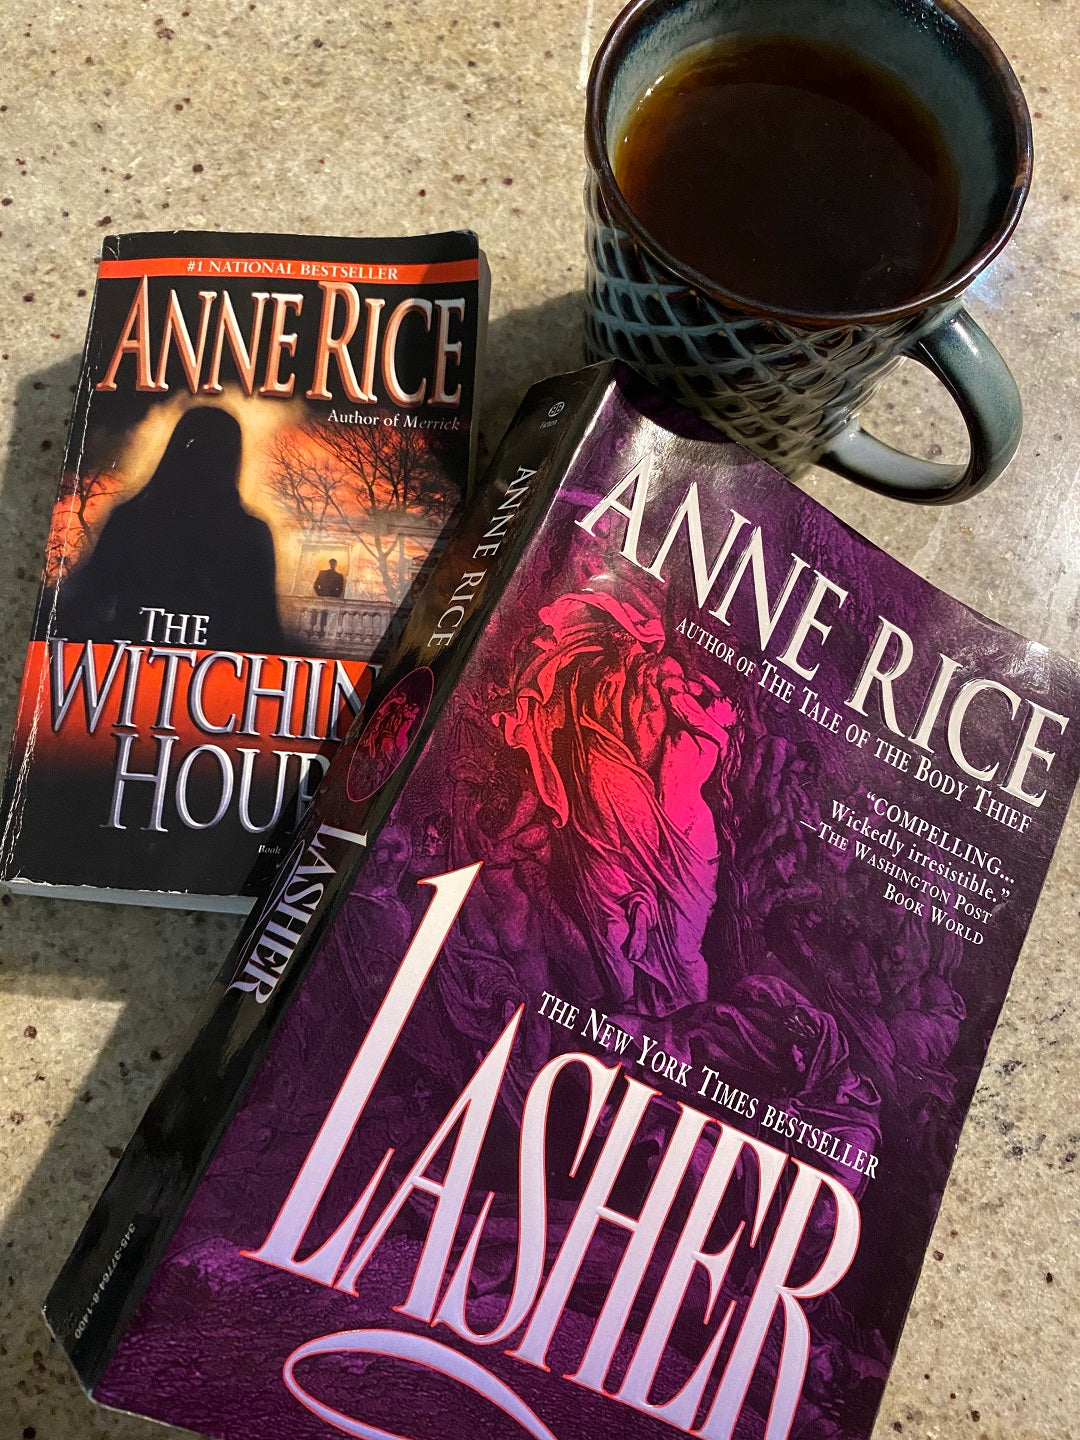 Novels by Anne Rice